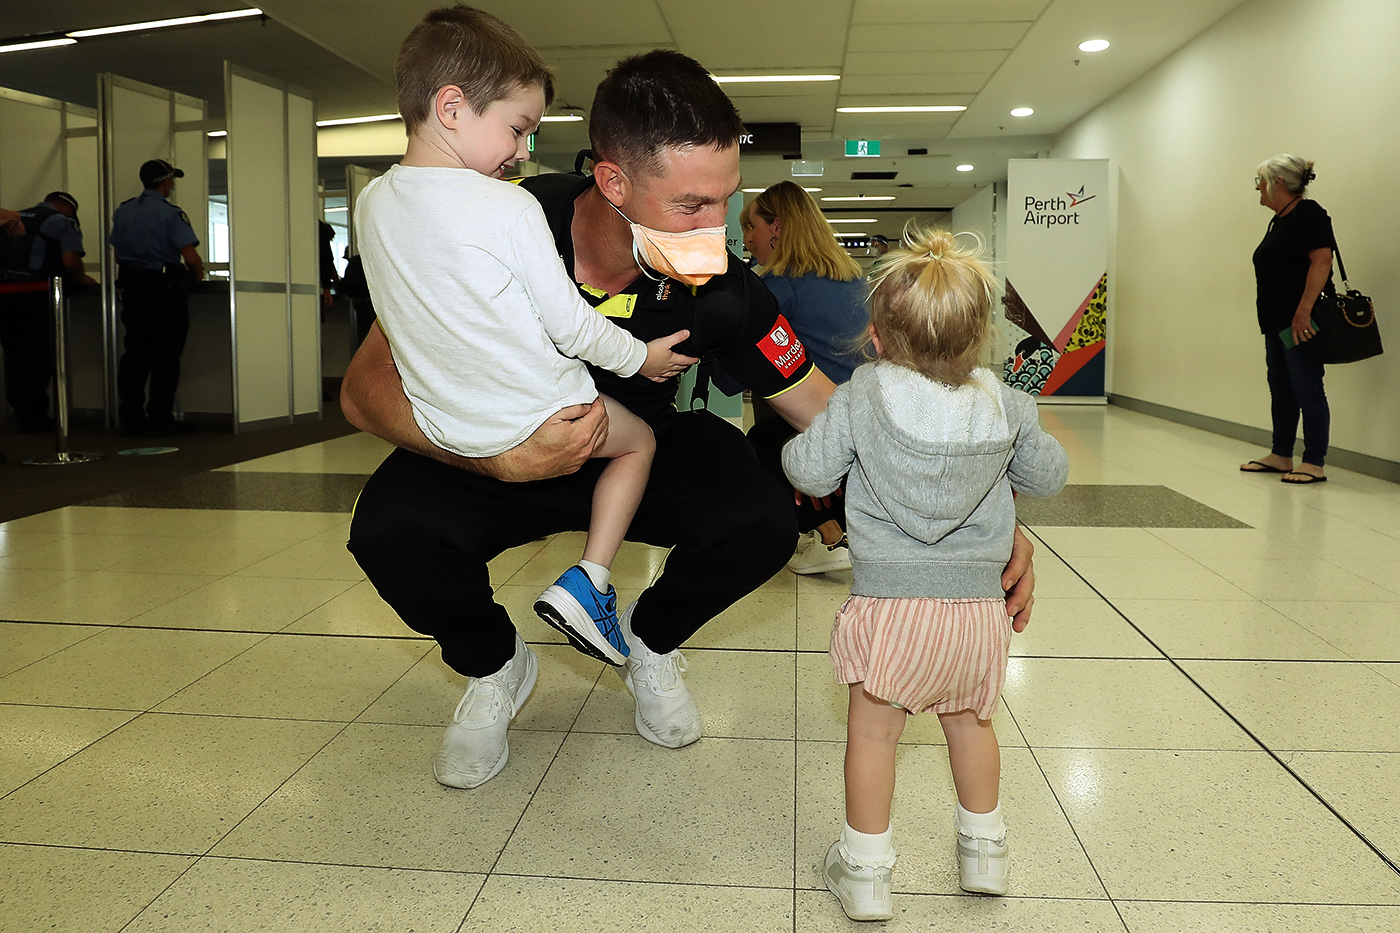 Shaun Marsh gets some time with his kids at Perth airport. Quarantine requirements have added to the amount of time players have to spend away from home